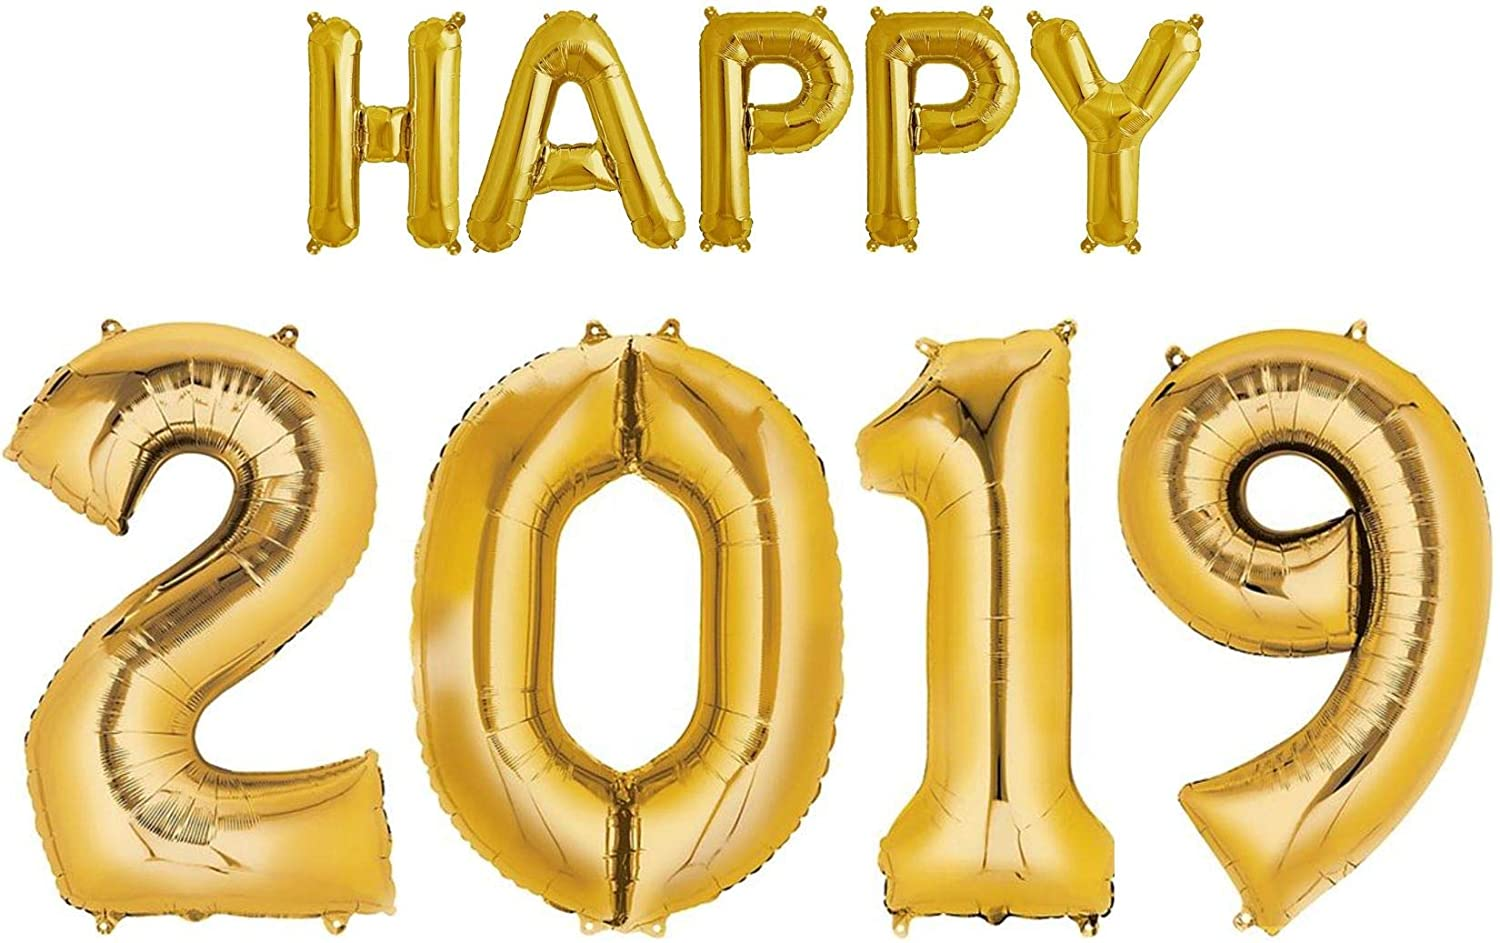 Happy 2019 Graduation Party Decorations Graduation Balloons for Class of 2019